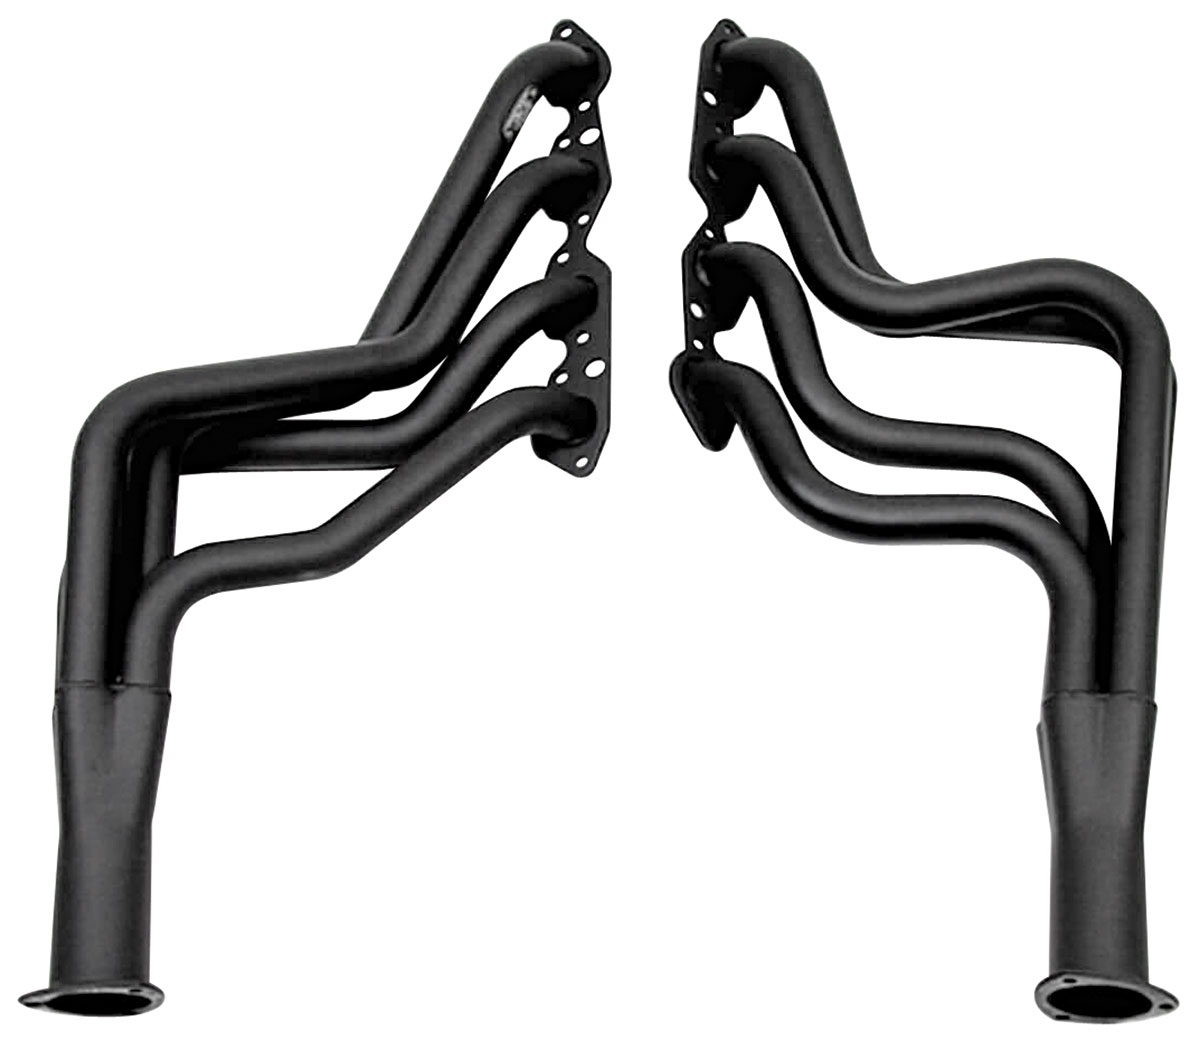 "Headers, Hooker Super Comp, 1964-77 Chevy A-Body BB 1-3/4"", Long-Tubed"